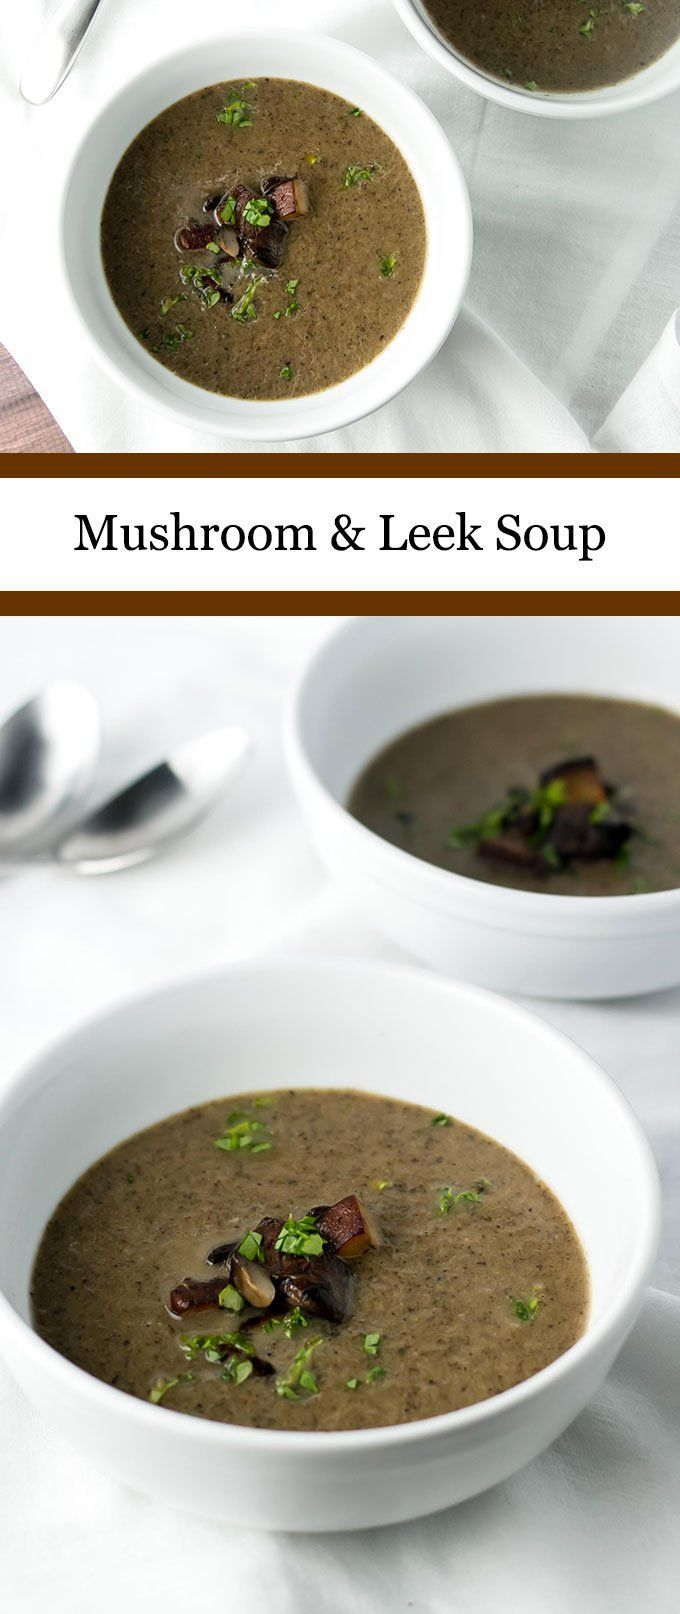 Warm and cozy mushroom and leek soup | girlgonegourmet.com